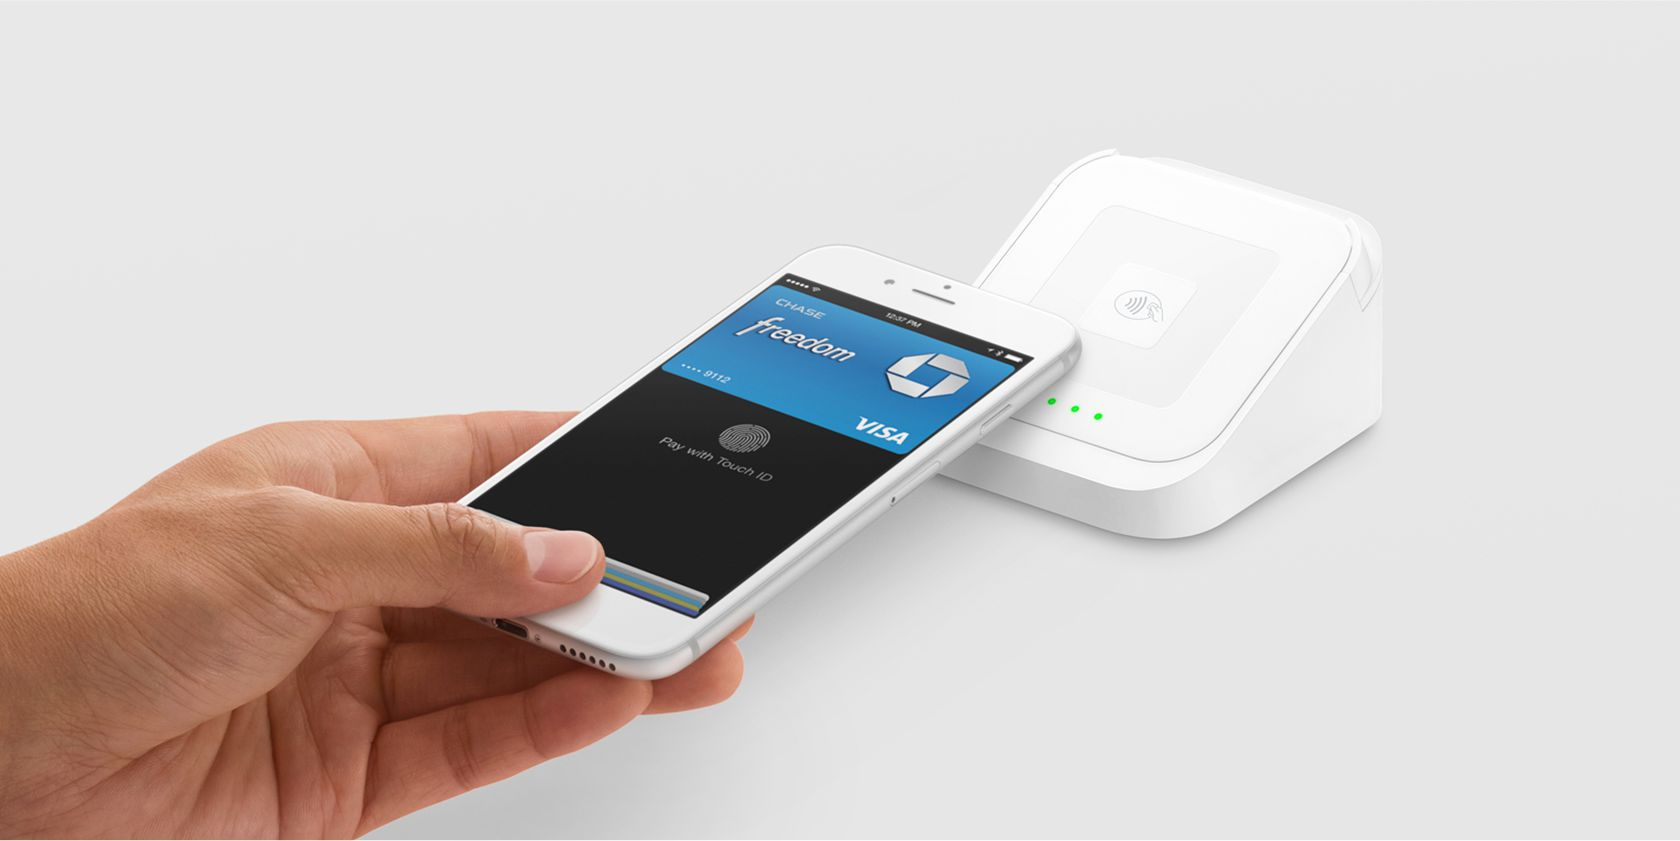 Le Square Reader sans contact et cartes à puce acceptant un paiement Apple Pay